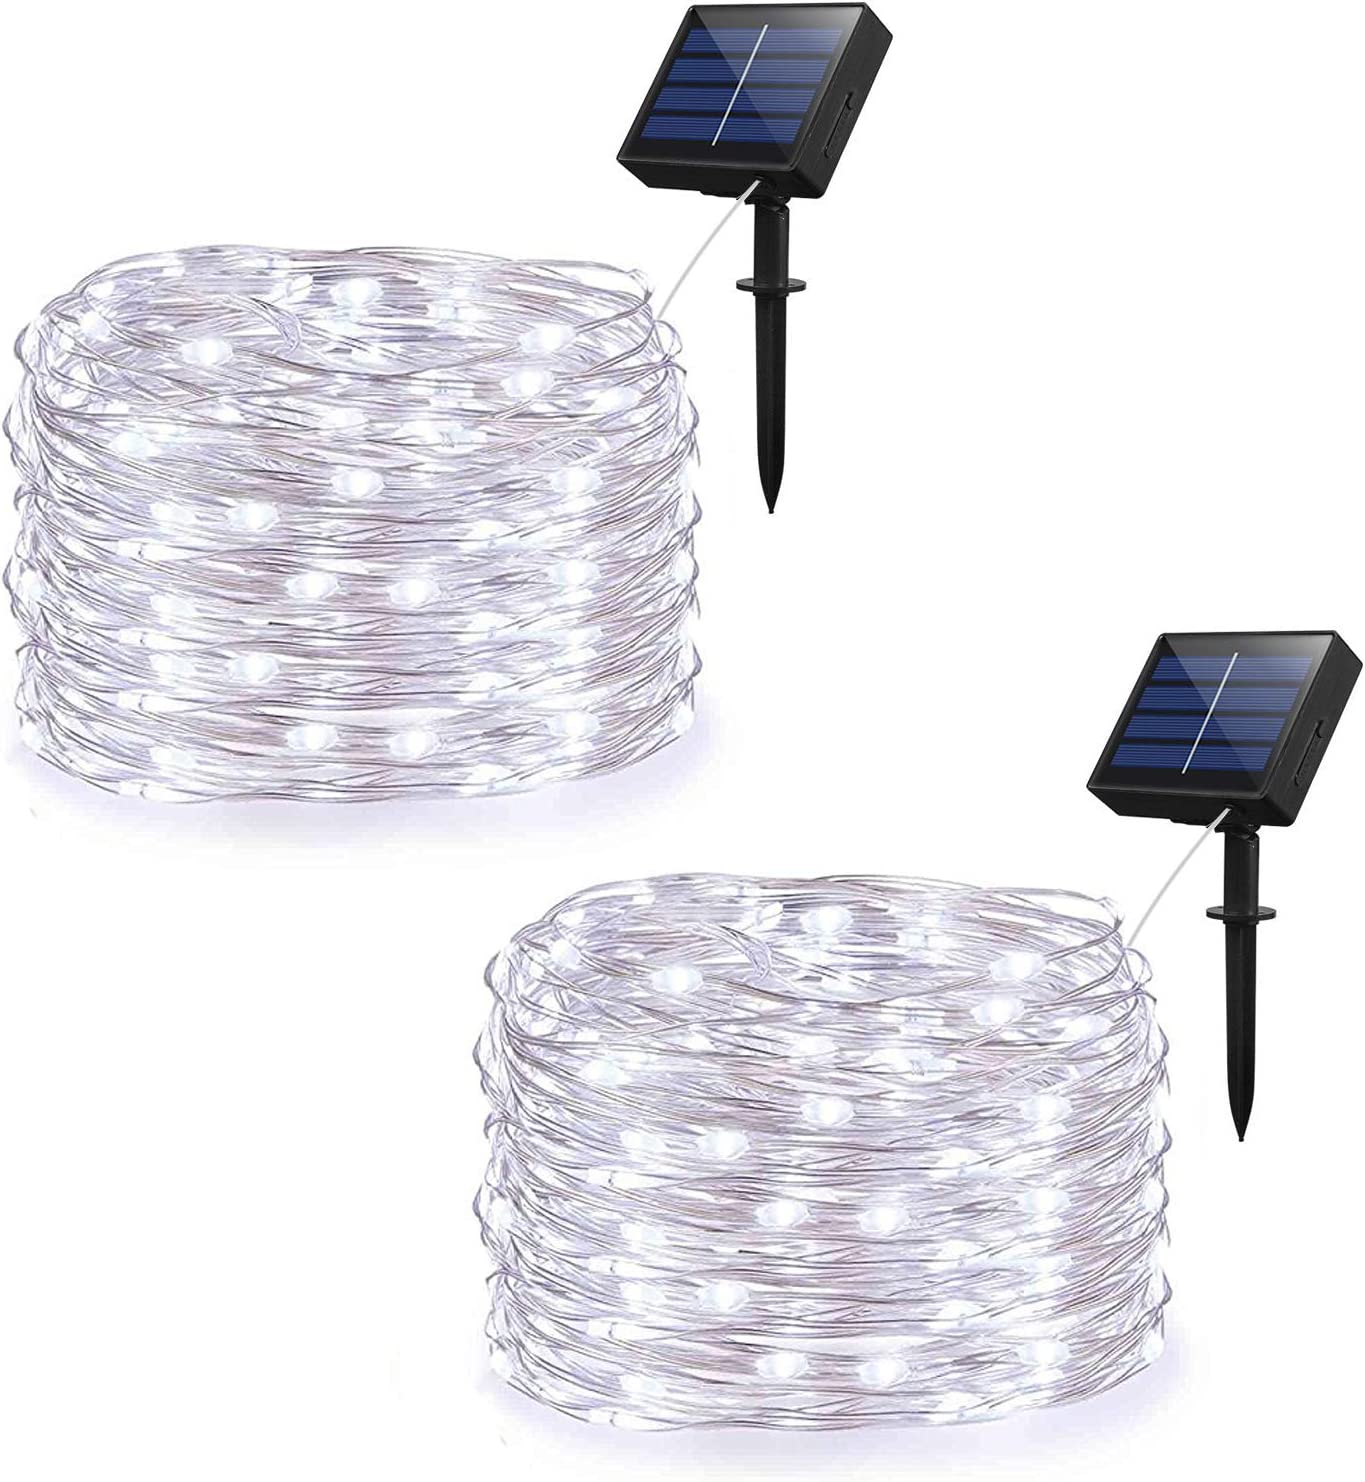 Weepong Solar String Lights Outdoor String lights with 100 LEDs 33ft Silver Copper Wire 8 Mode Waterproof Solar Starry Lights for Halloween Christmas Decoration Wedding Garden Patio(Cold White 2 Pack)